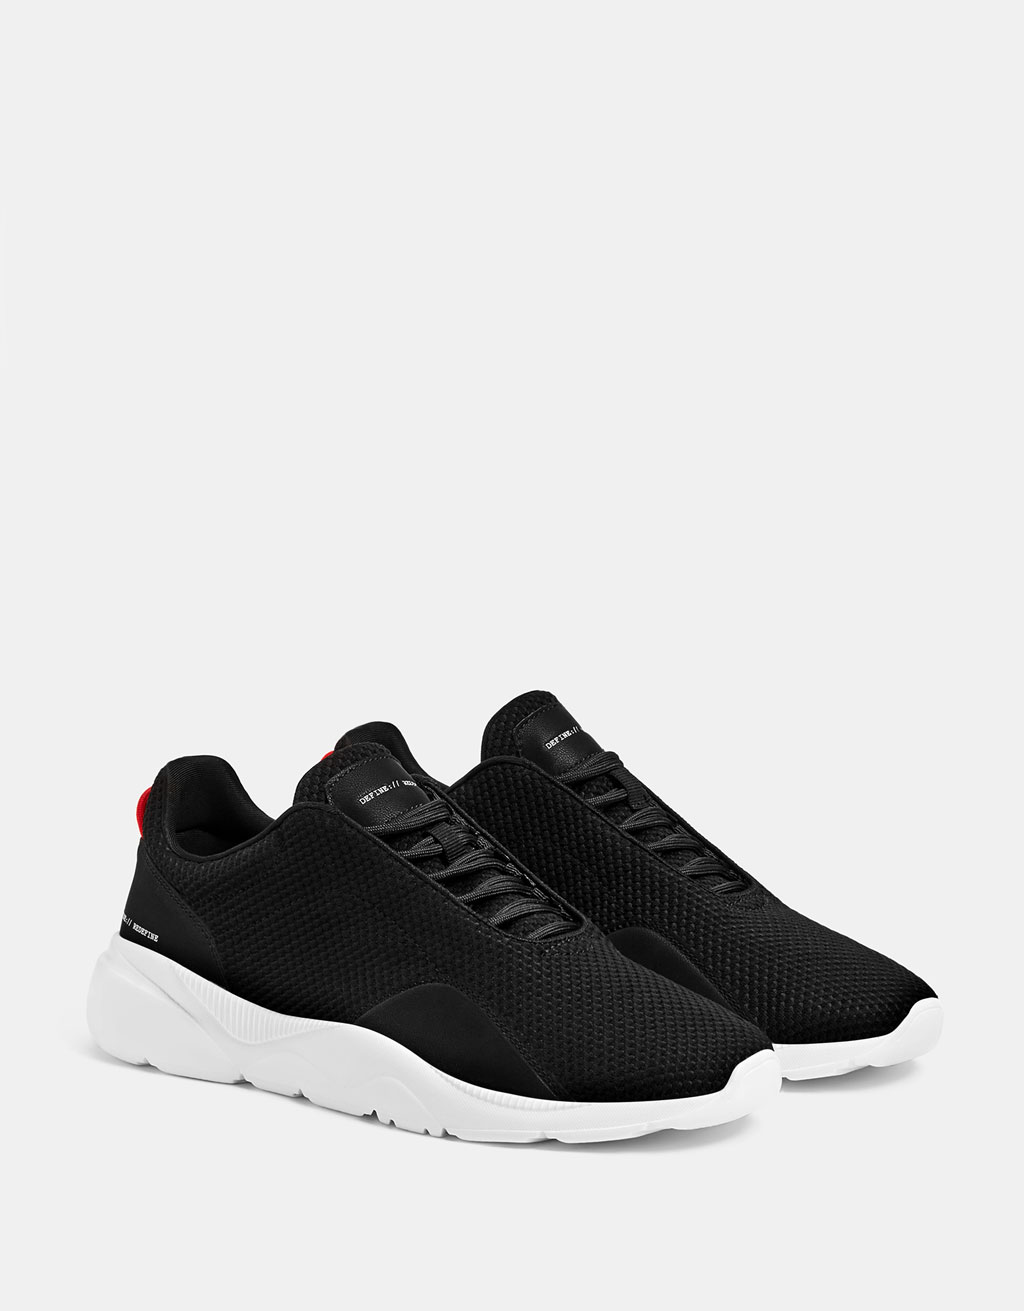 Men's mesh technical sneakers